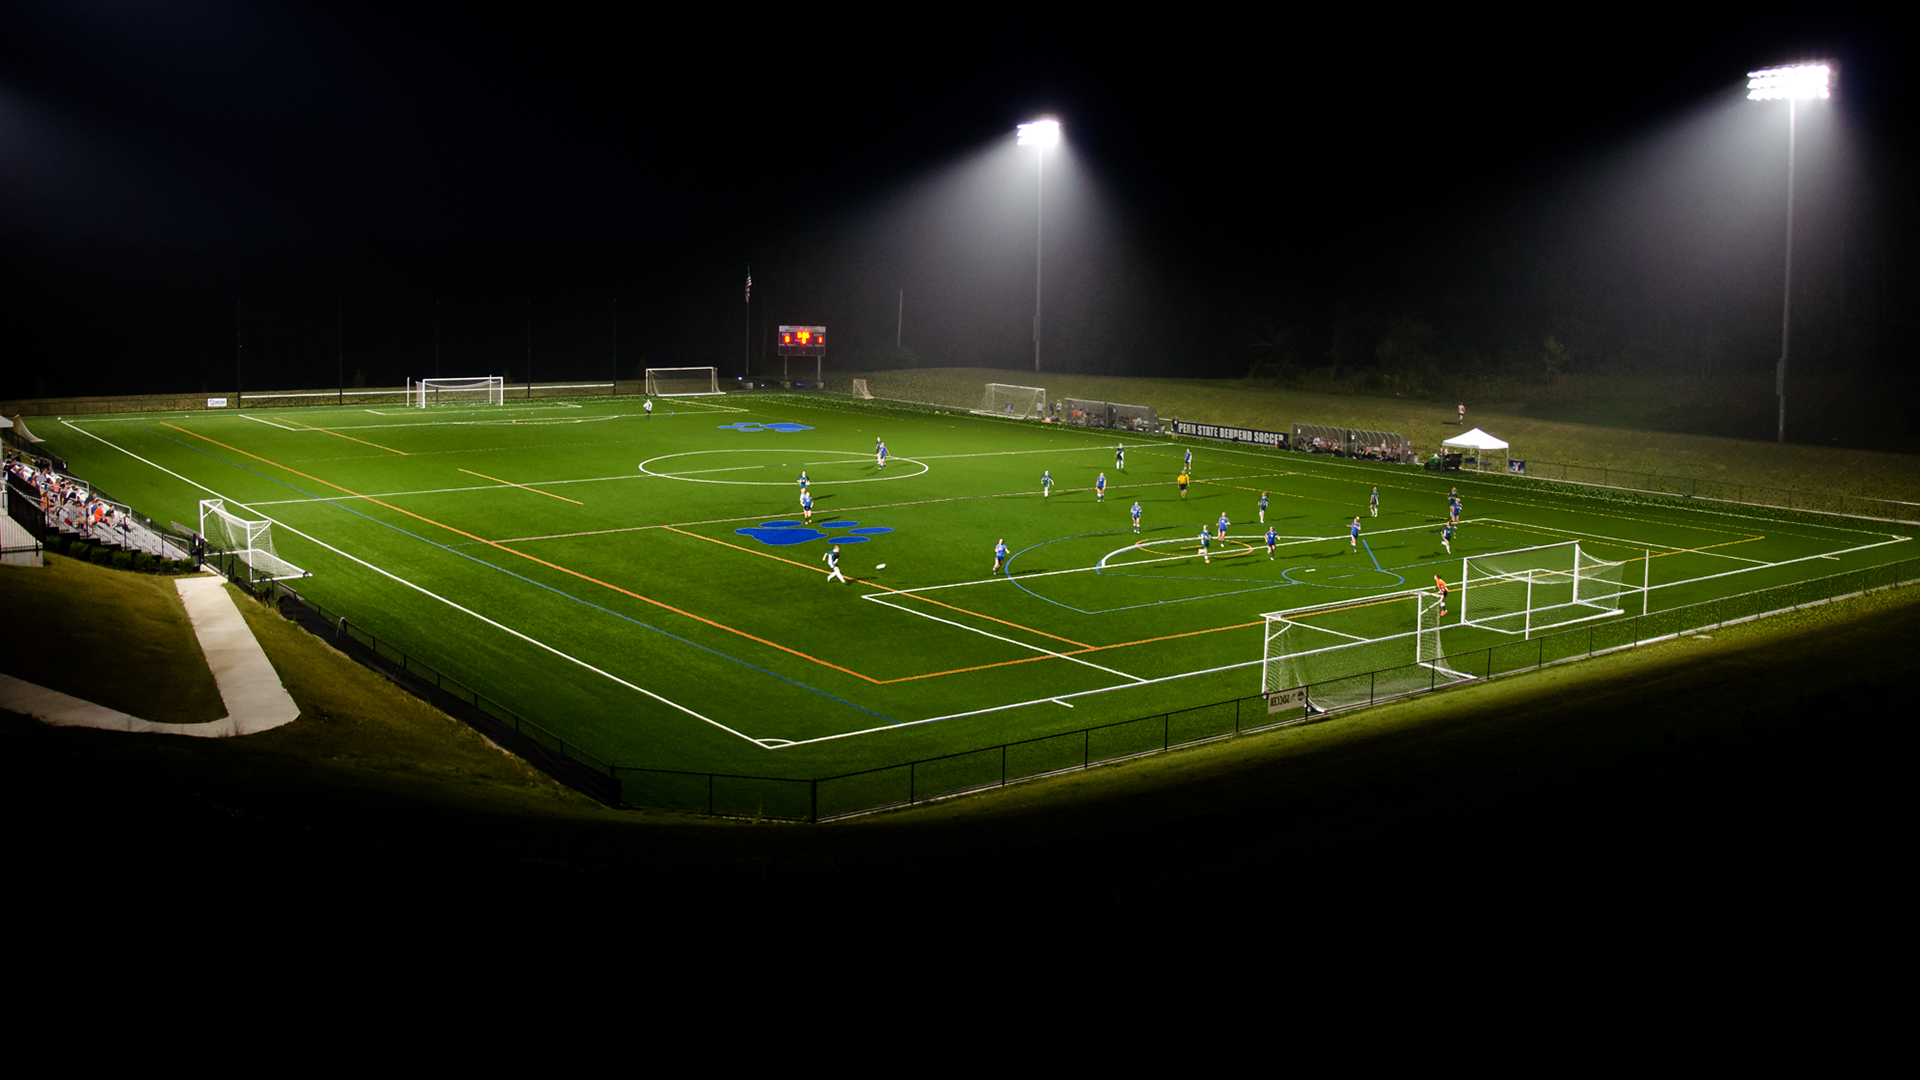 The soccer field at night